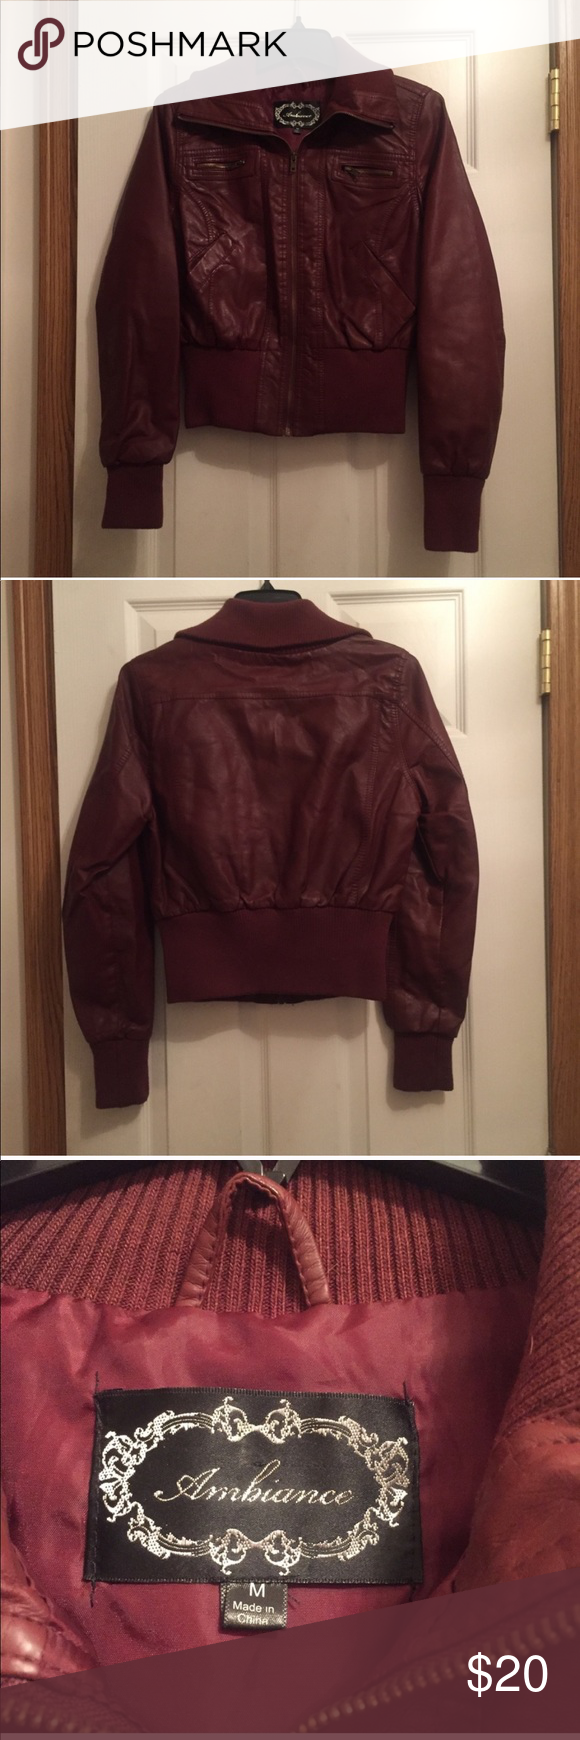 Maroon Wine Color Bomber Jacket A Ambiance Jackets Coats Maroon Bomber Jacket Bomber Jacket Jackets [ 1740 x 580 Pixel ]